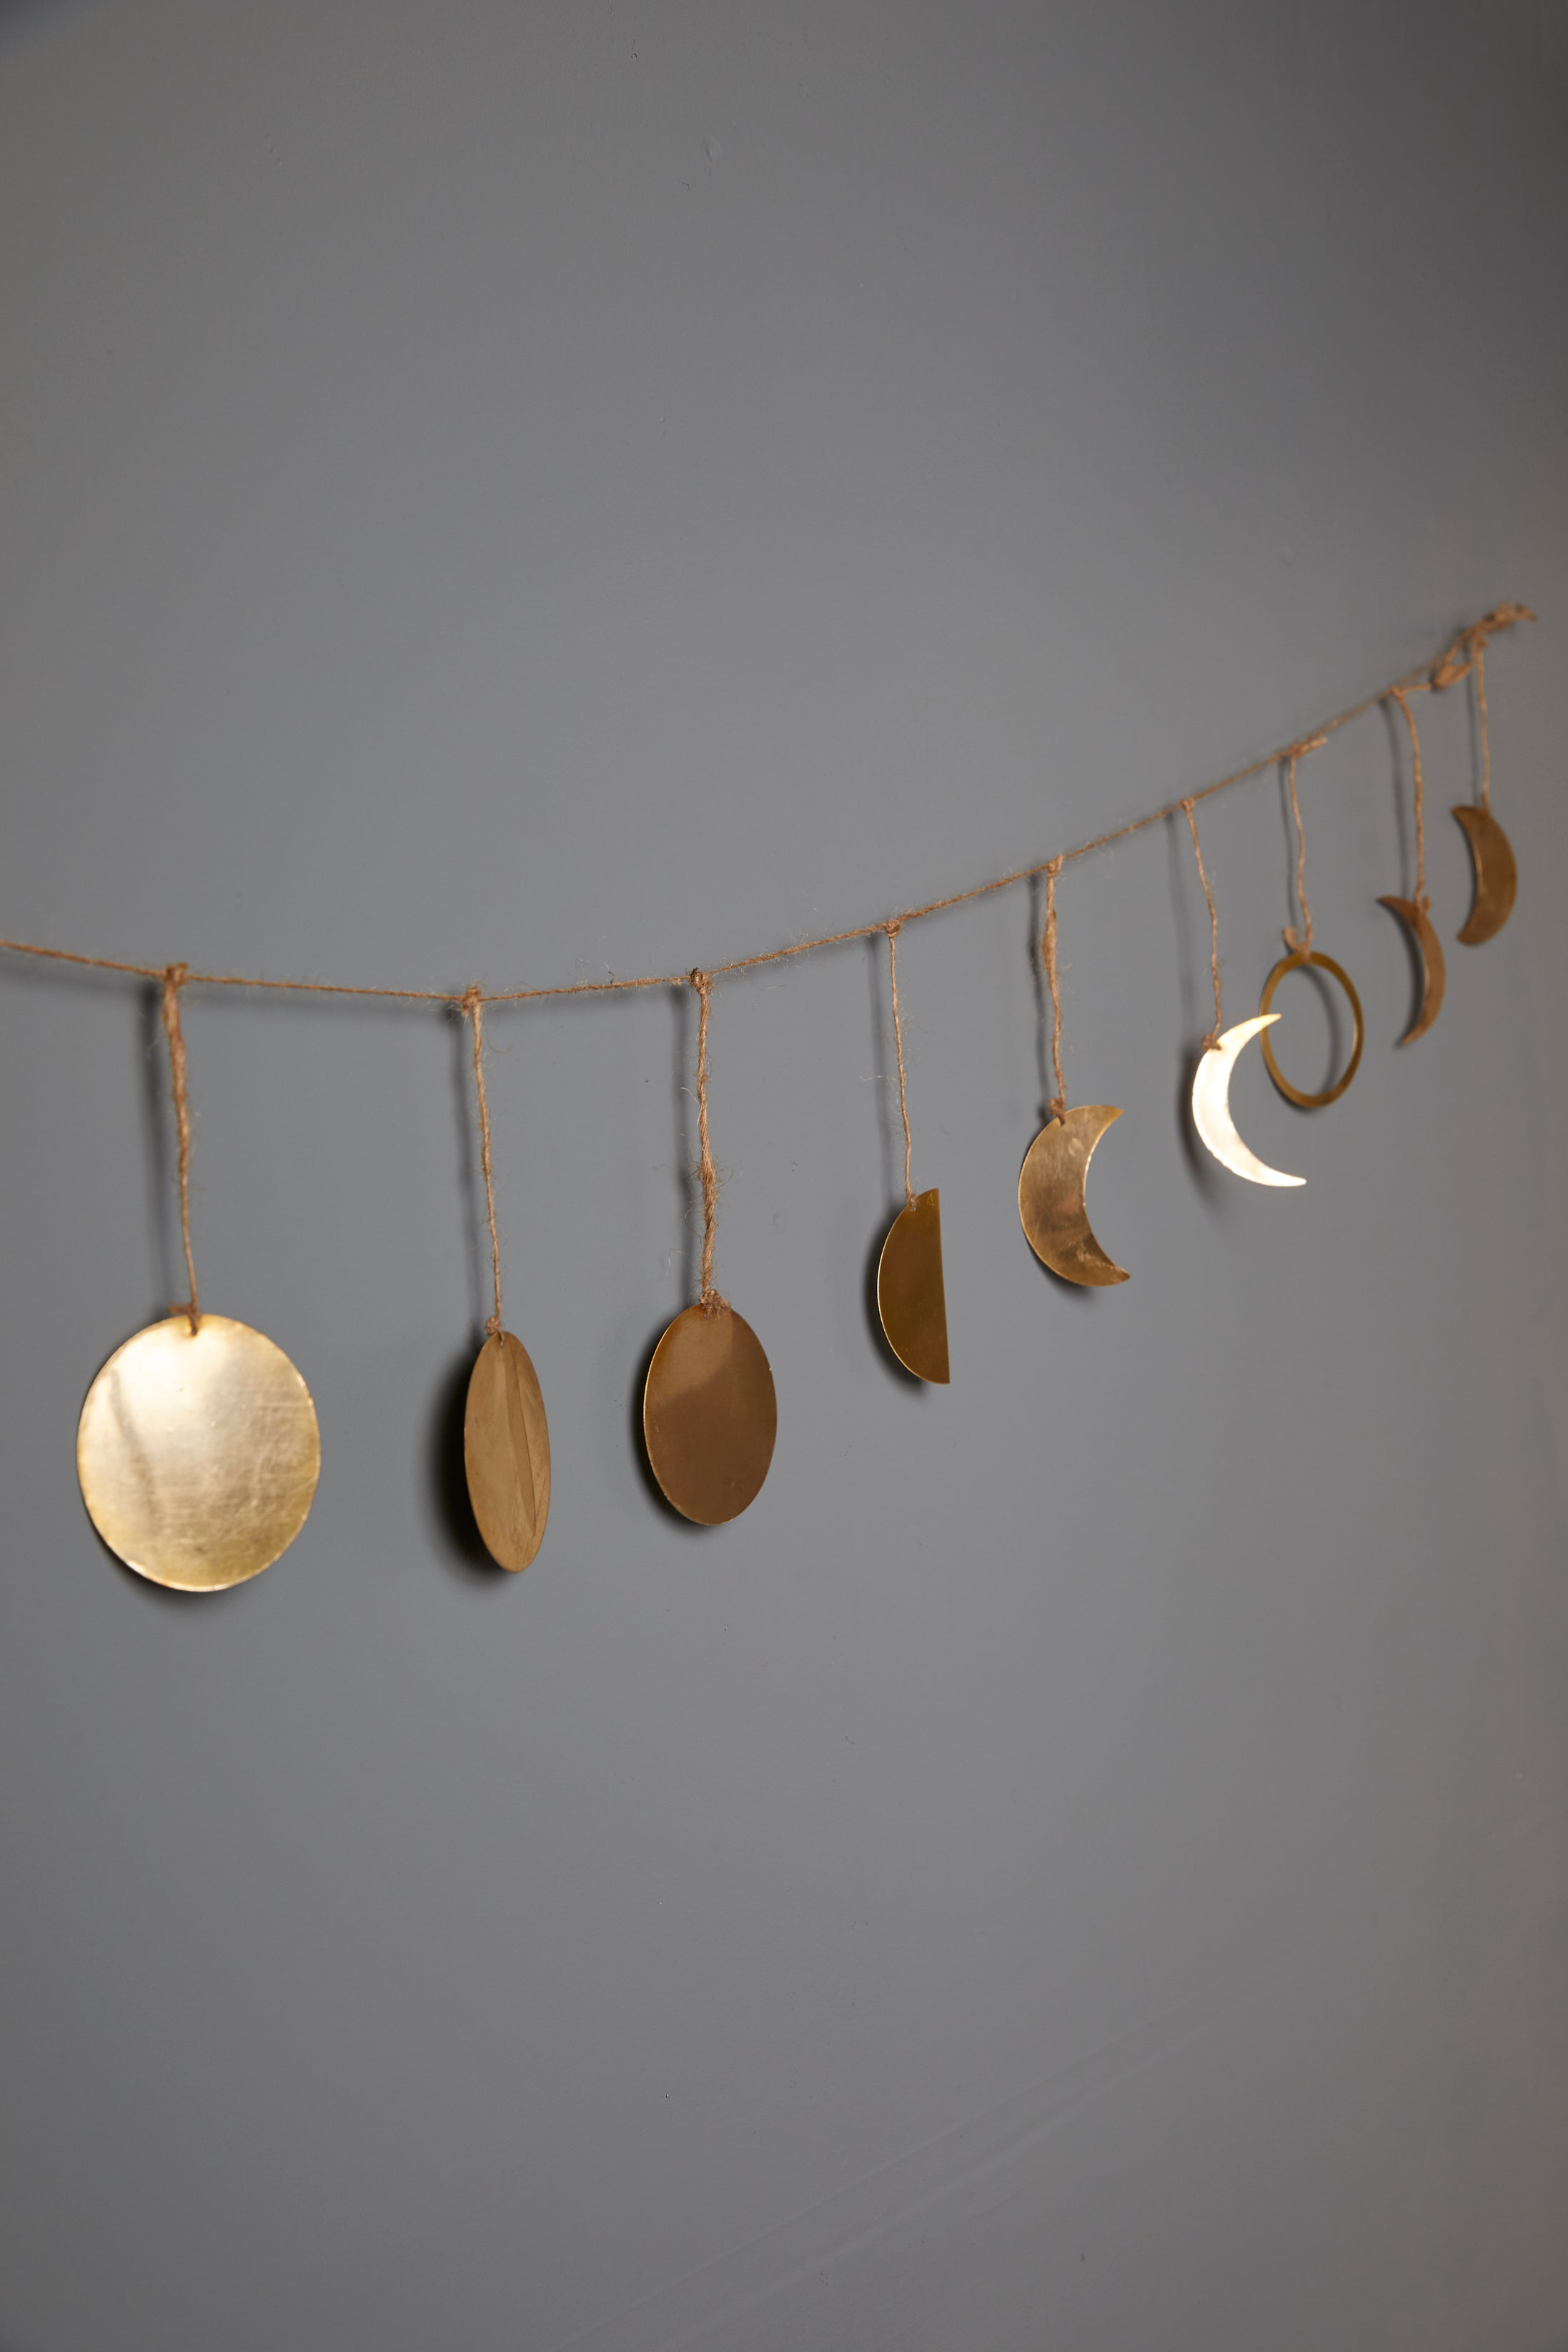 Phases of Moon Garland - picnic-sf